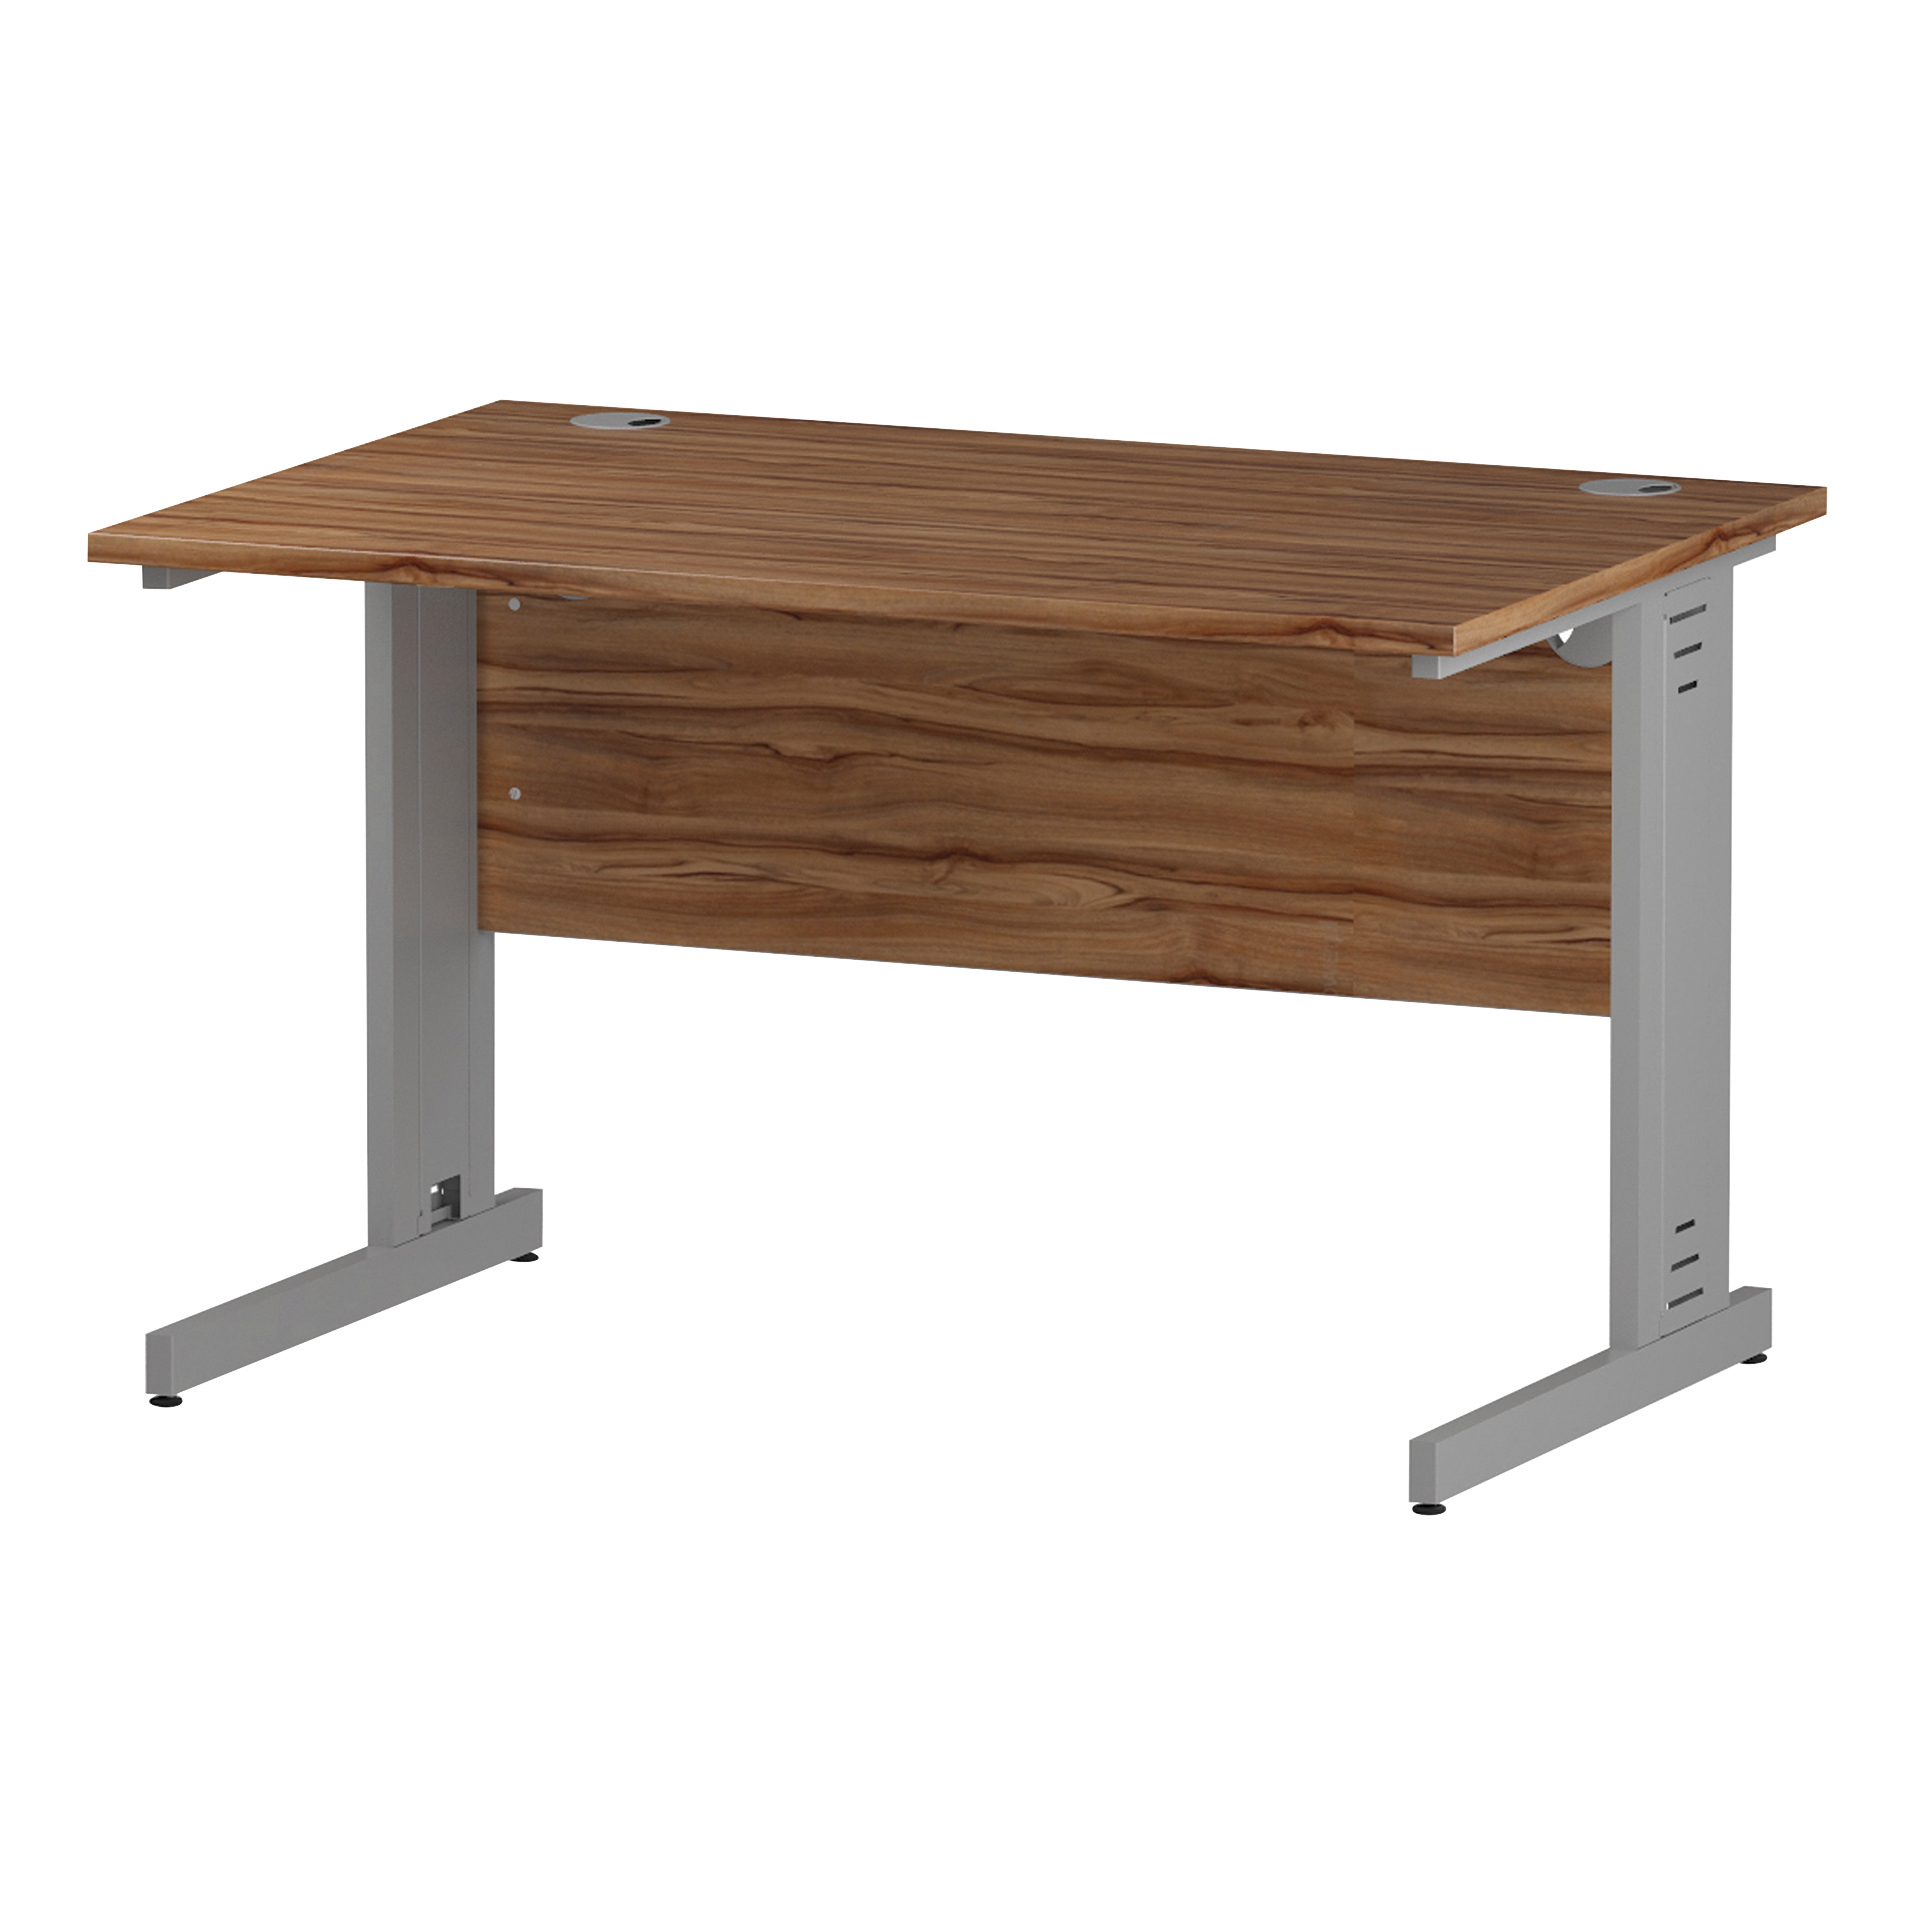 Trexus Rectangular Desk Silver Cable Managed Leg 1200x800mm Walnut Ref I001990